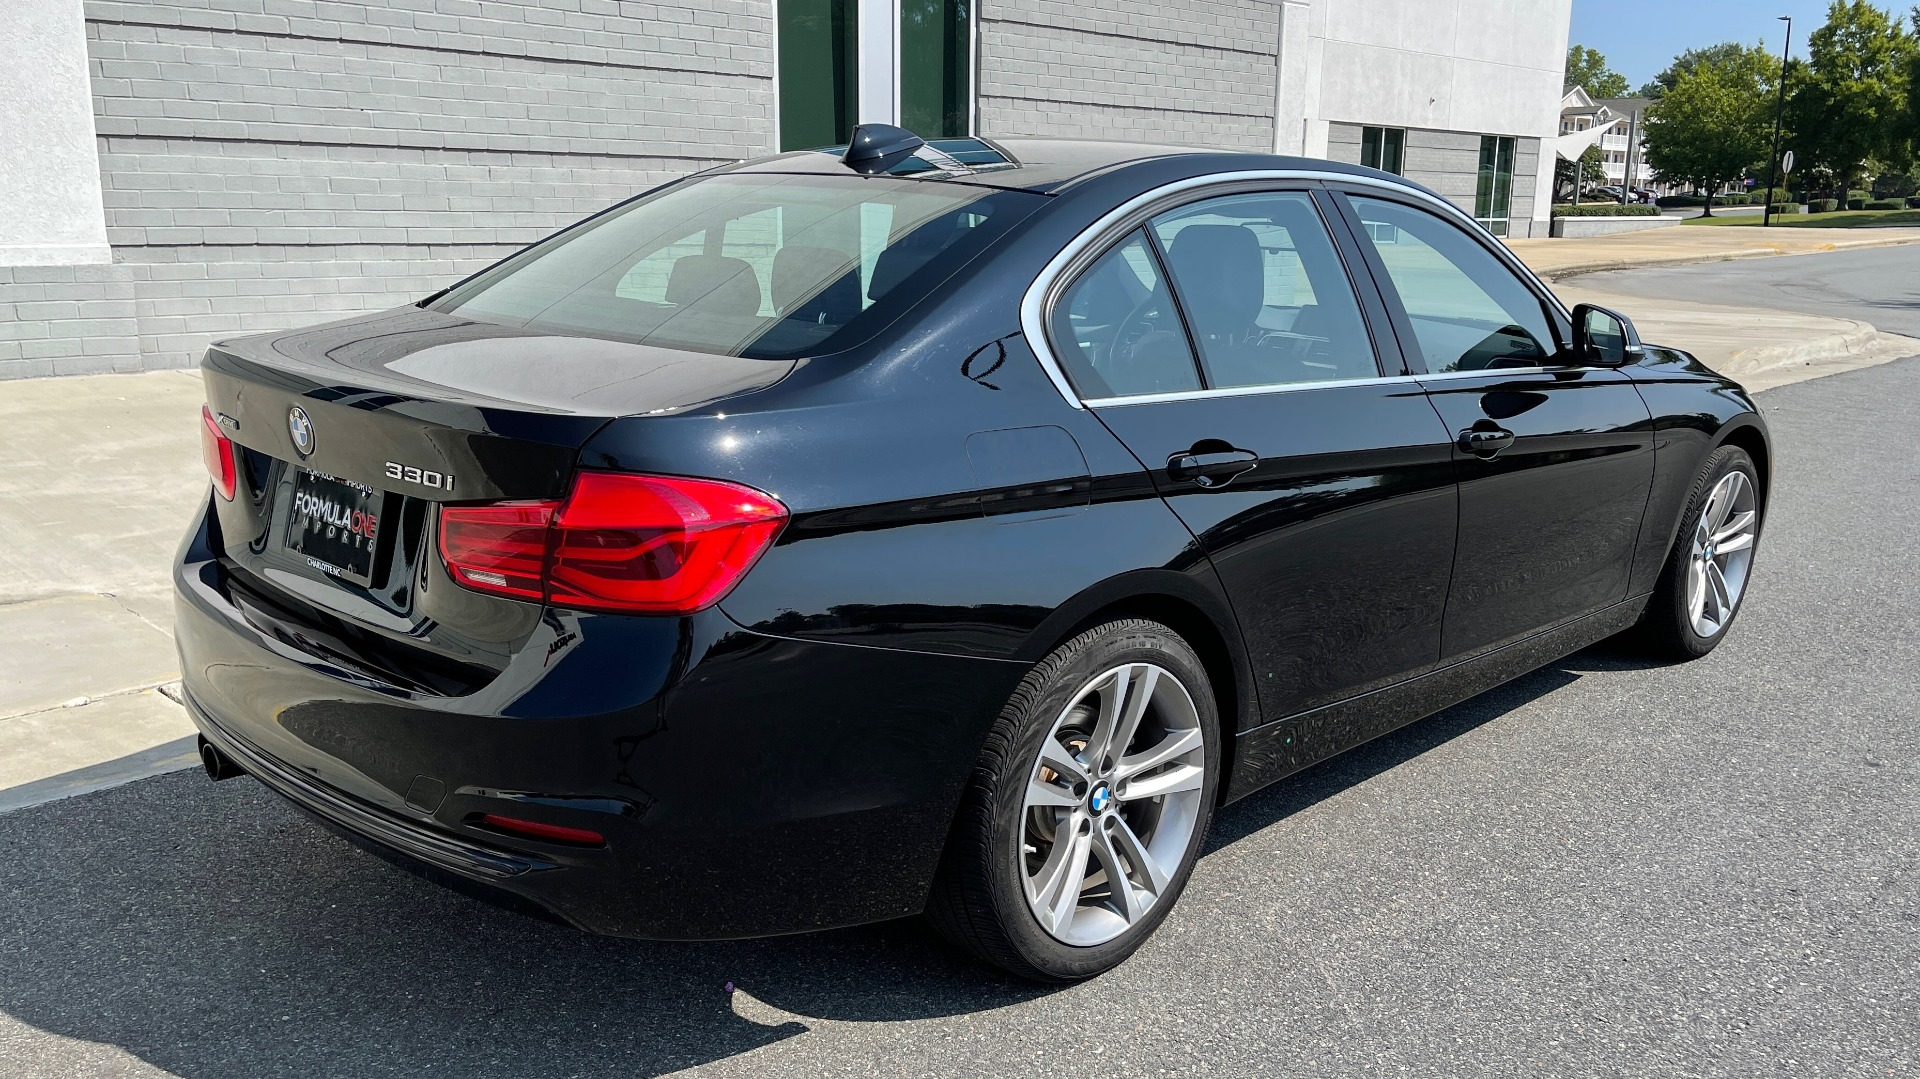 Used 2018 BMW 3 SERIES 330I XDRIVE / CONV PKG / SUNROOF / HTD STS / ABSD / REARVIEW for sale $30,695 at Formula Imports in Charlotte NC 28227 2